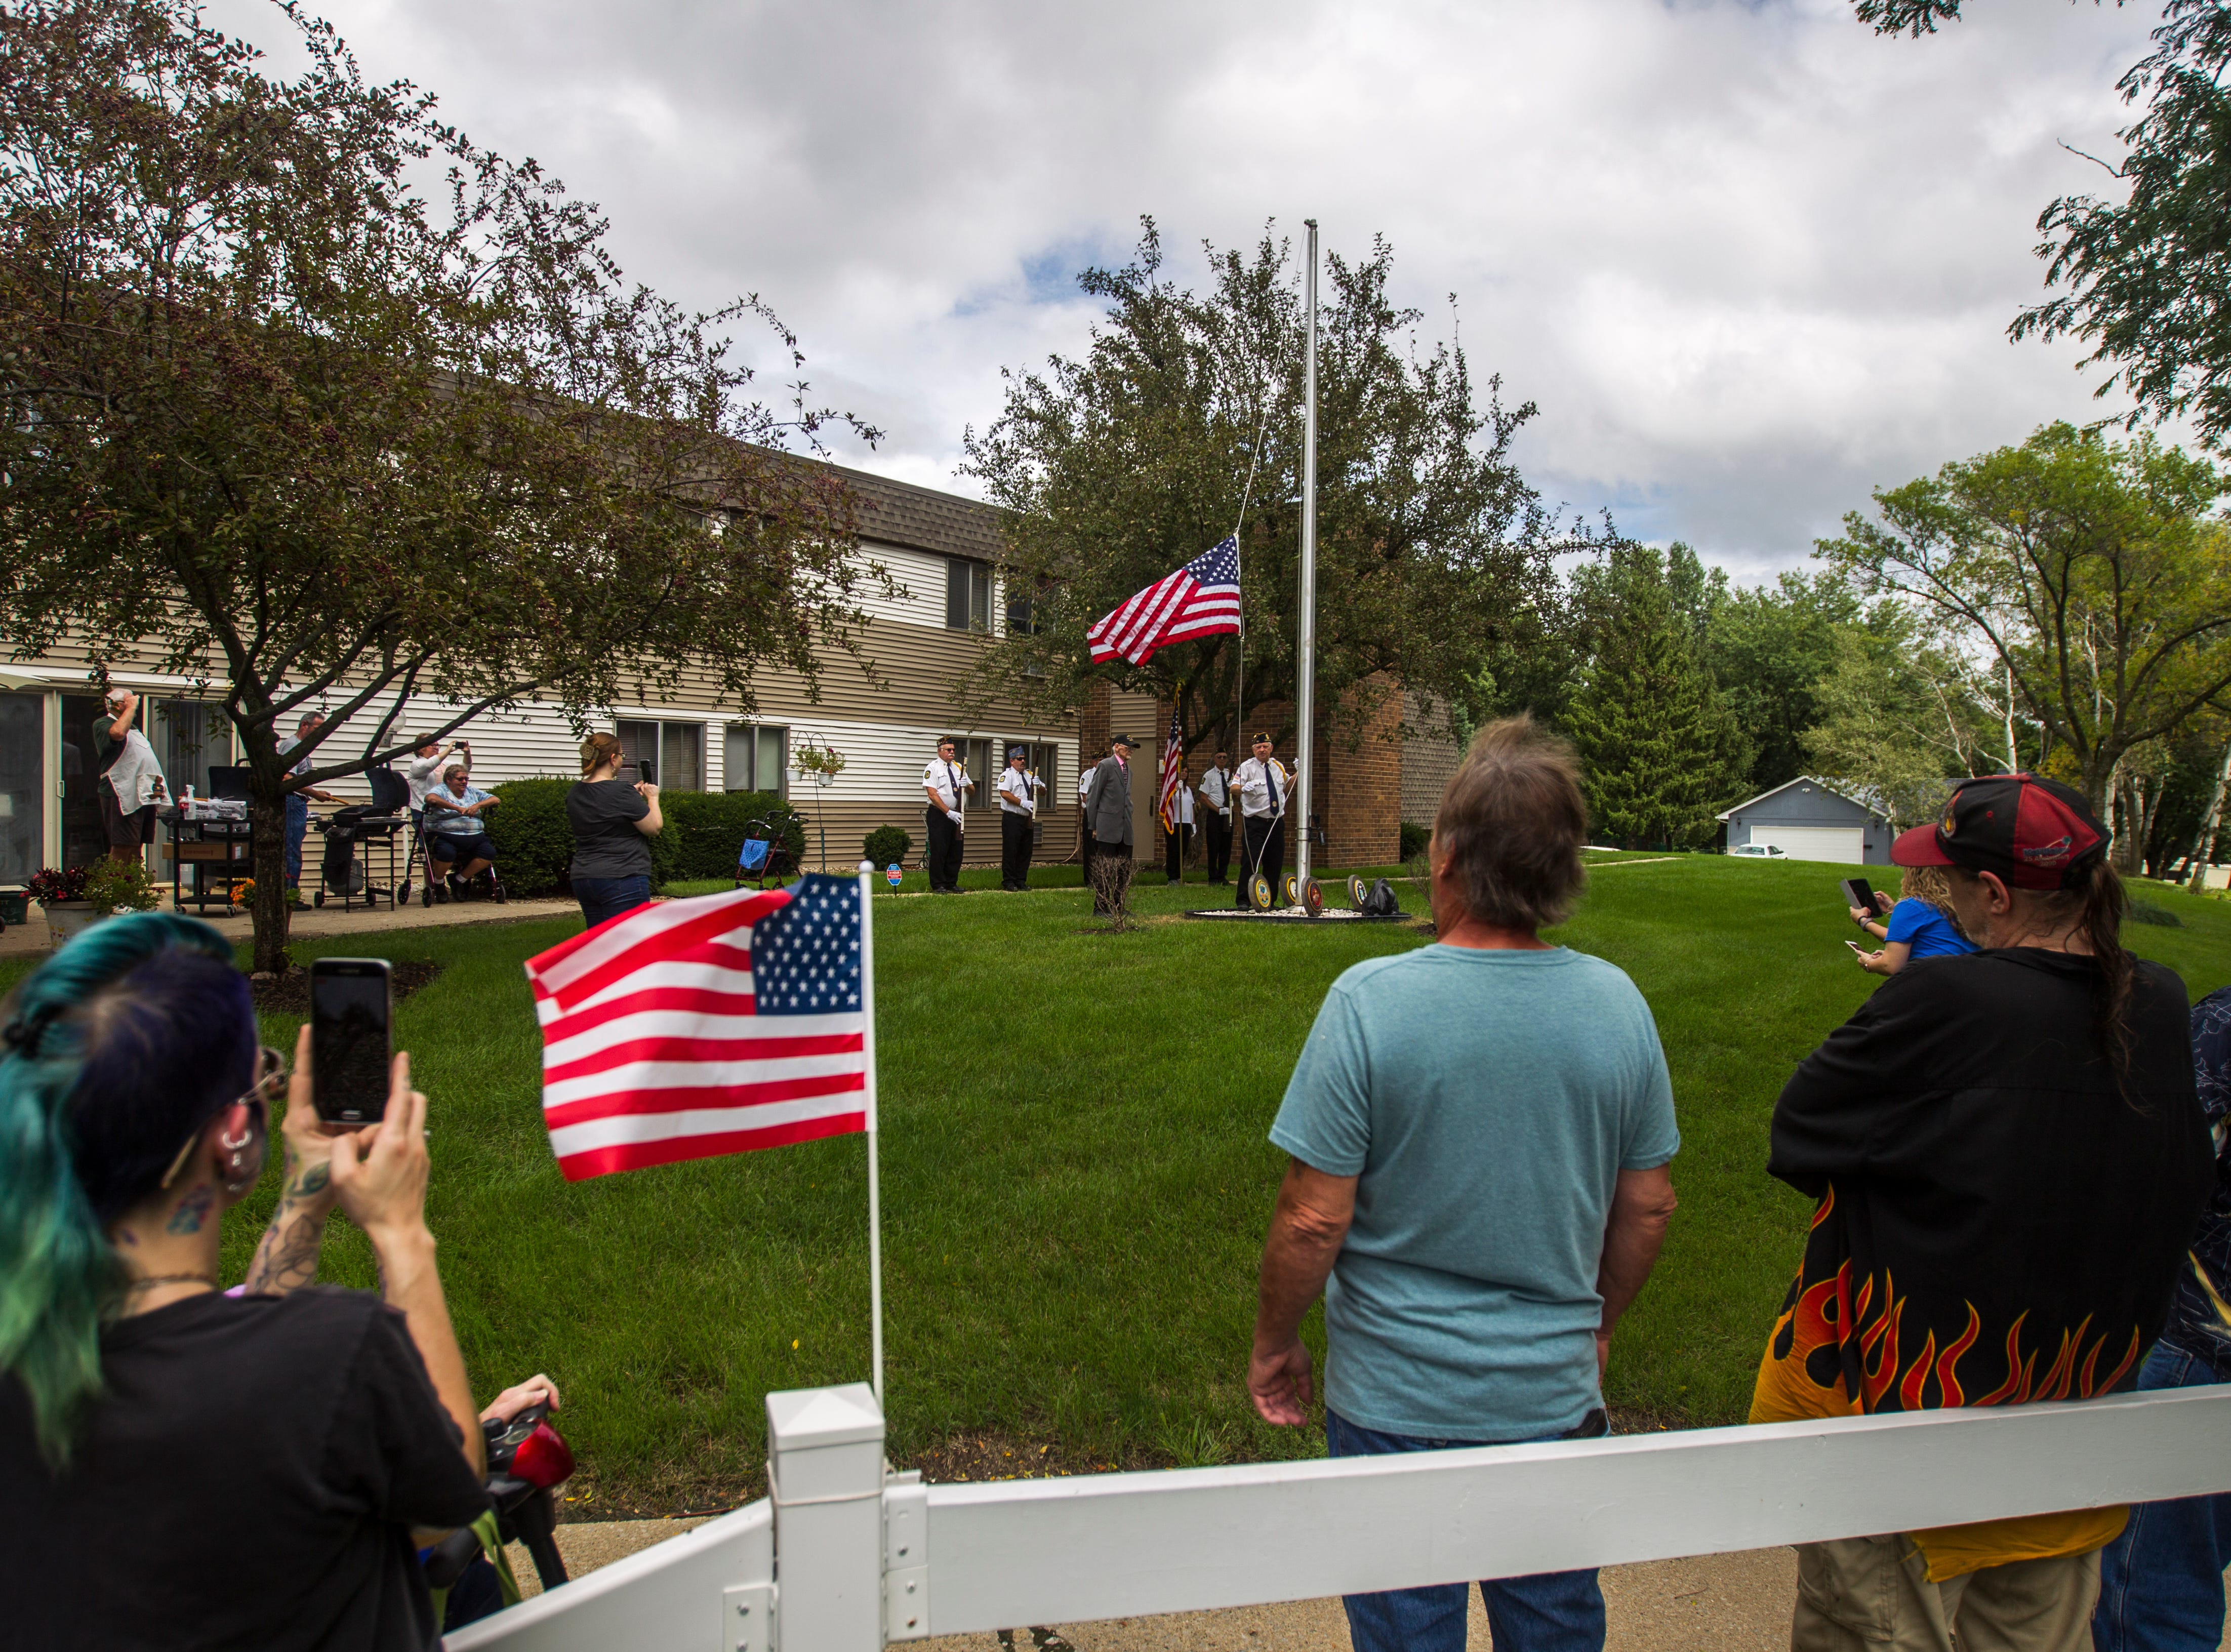 World War II U.S. Navy veteran Russell H. Ware watches American Legion Post 721 honor guard Sgt. of arms Tom Travis raise a flag during a dedication ceremony on Monday, Sept. 3, 2018, at the Autumn Park Apartments in Iowa City.